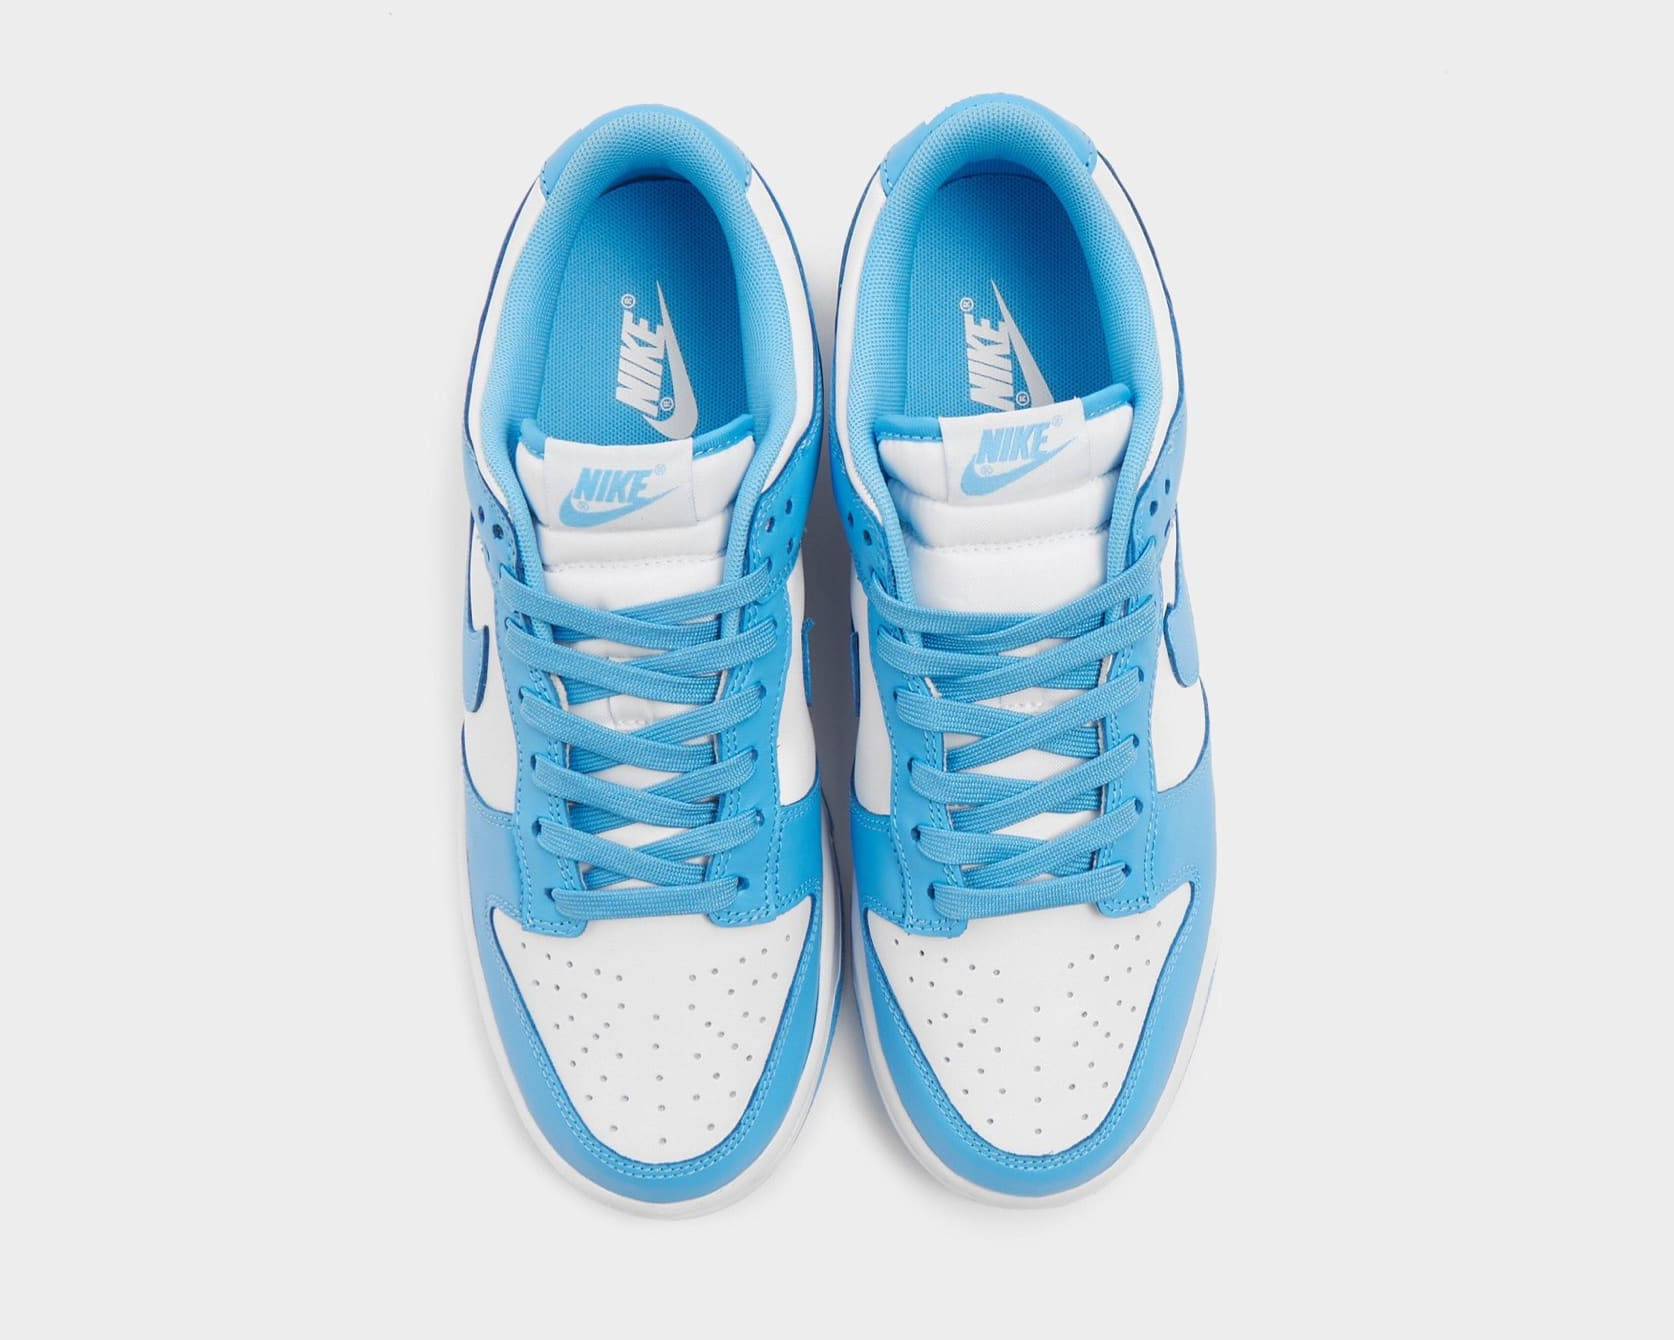 Nike Dunk Low 'University Blue' DD1391-102 Top